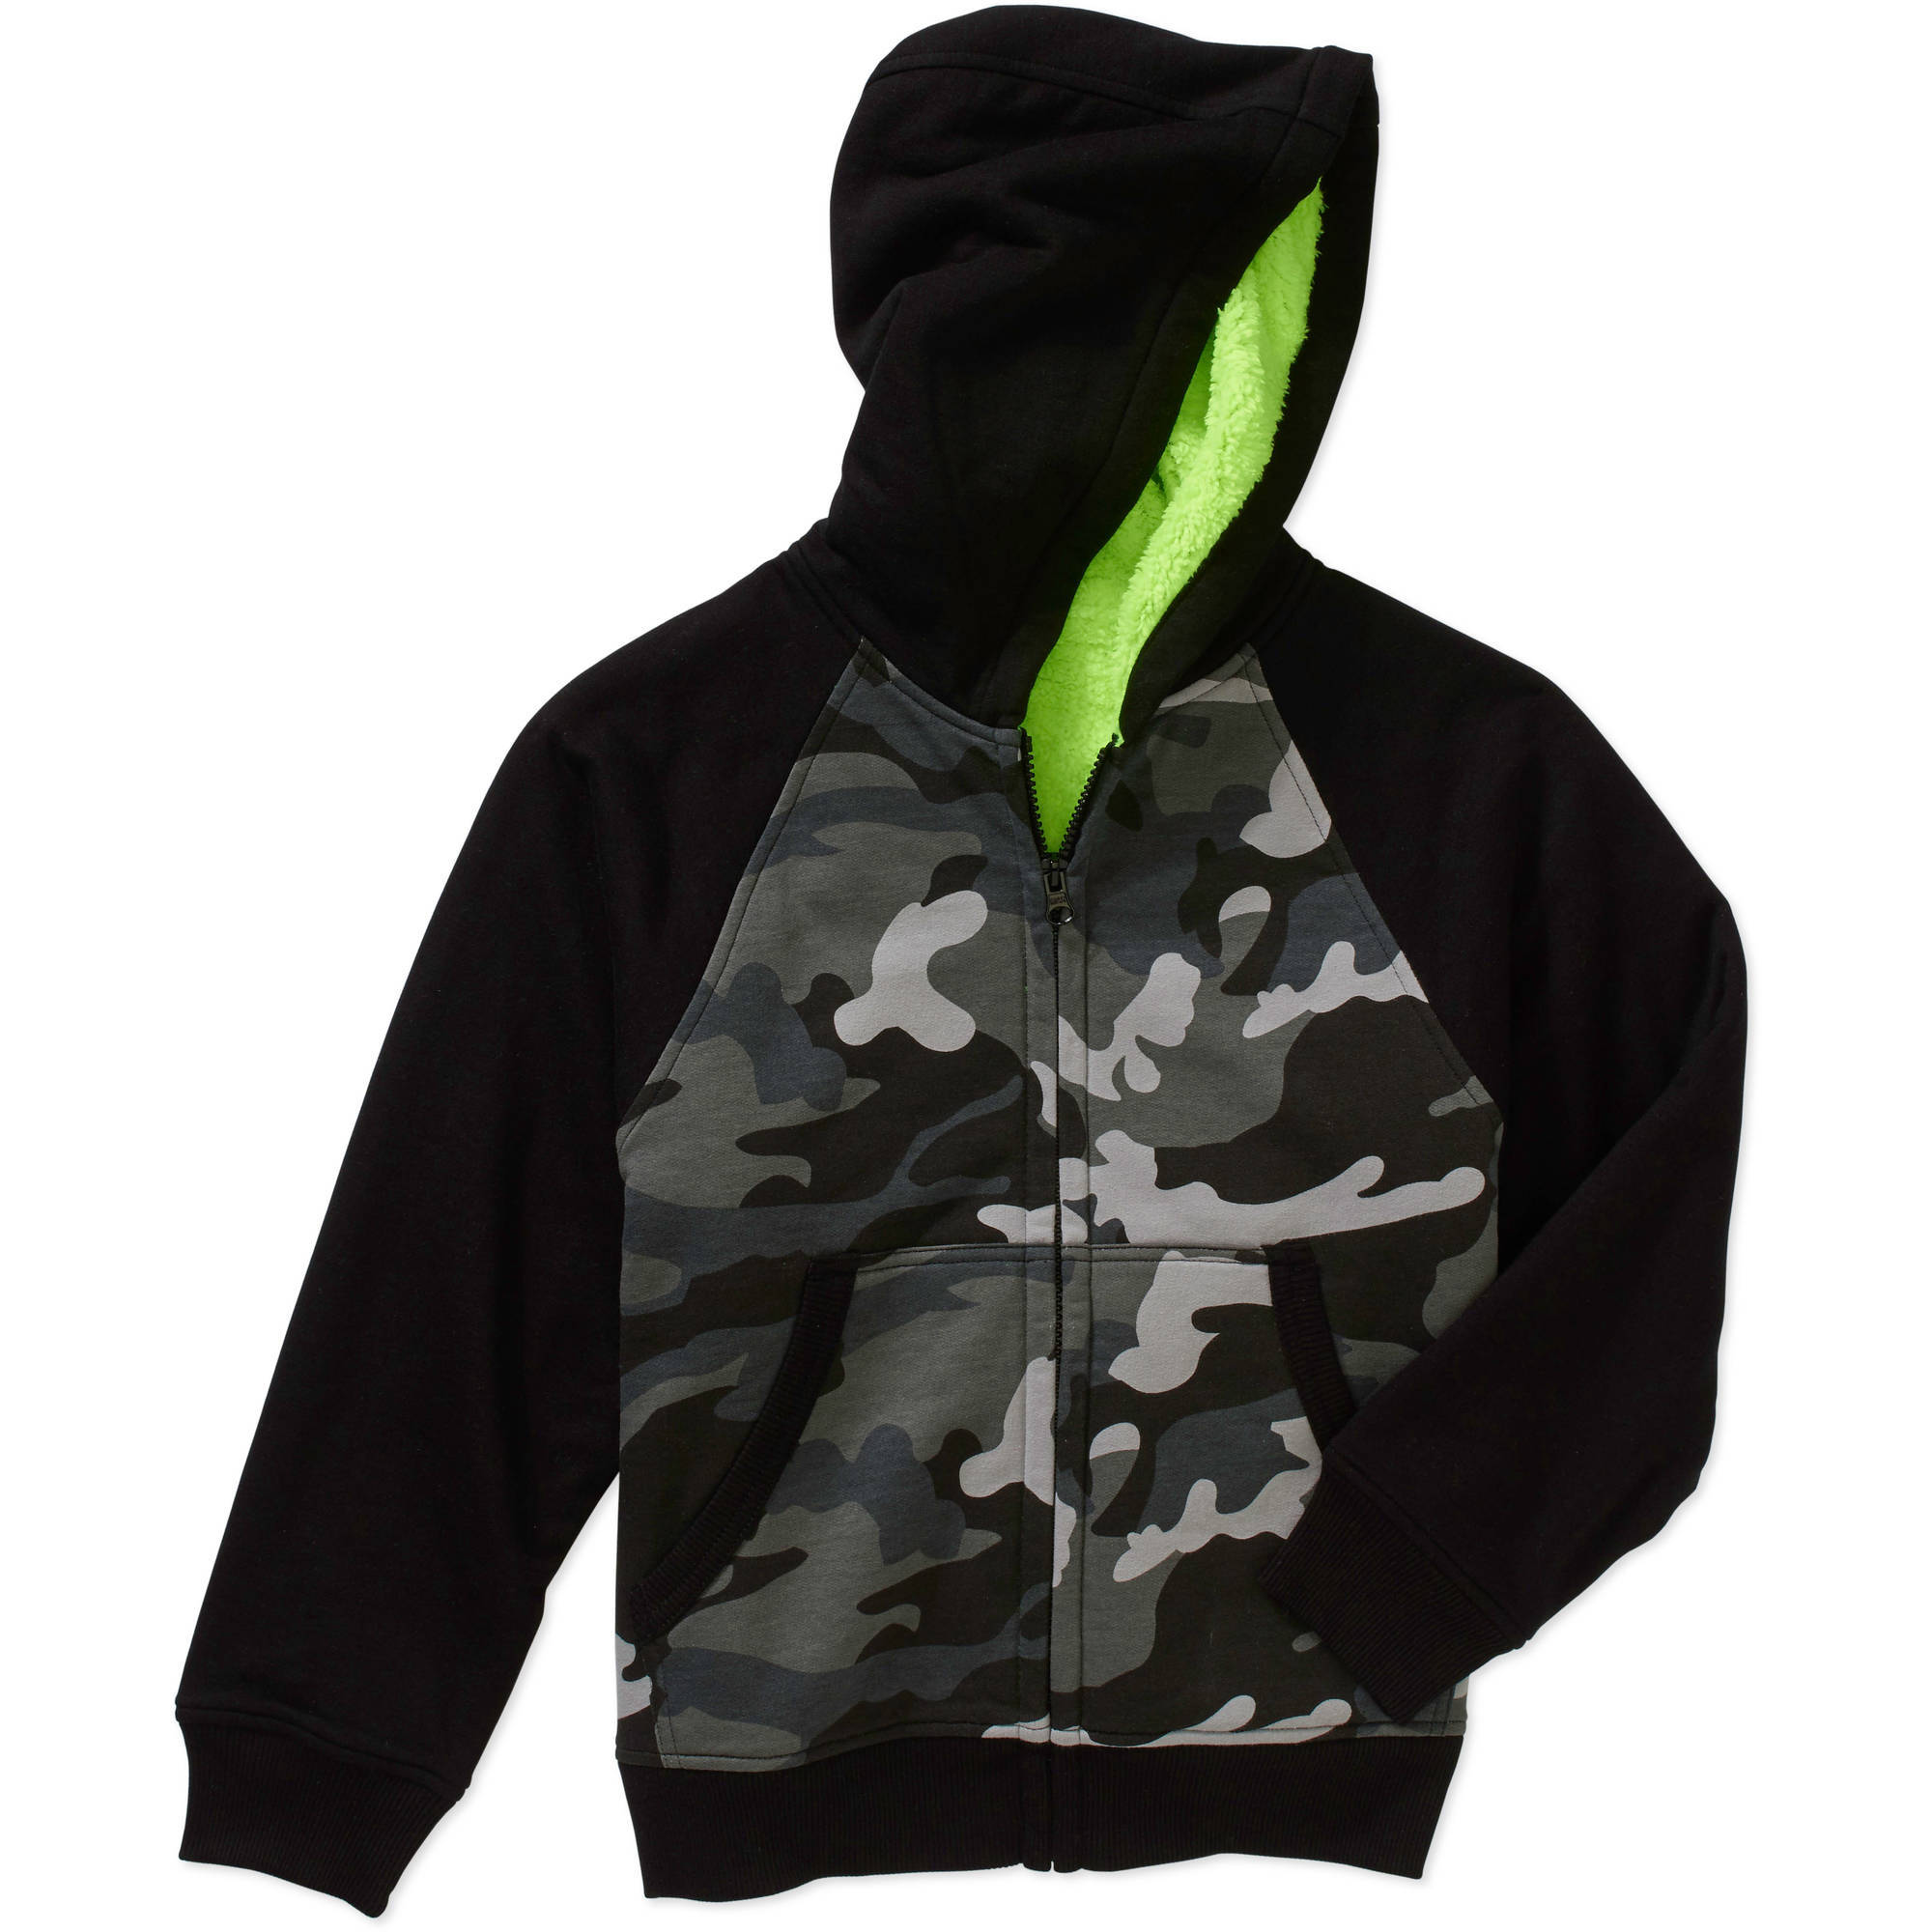 Faded Glory Boys Sherpa Hoodie, Available in Solids, Camo, and Marled